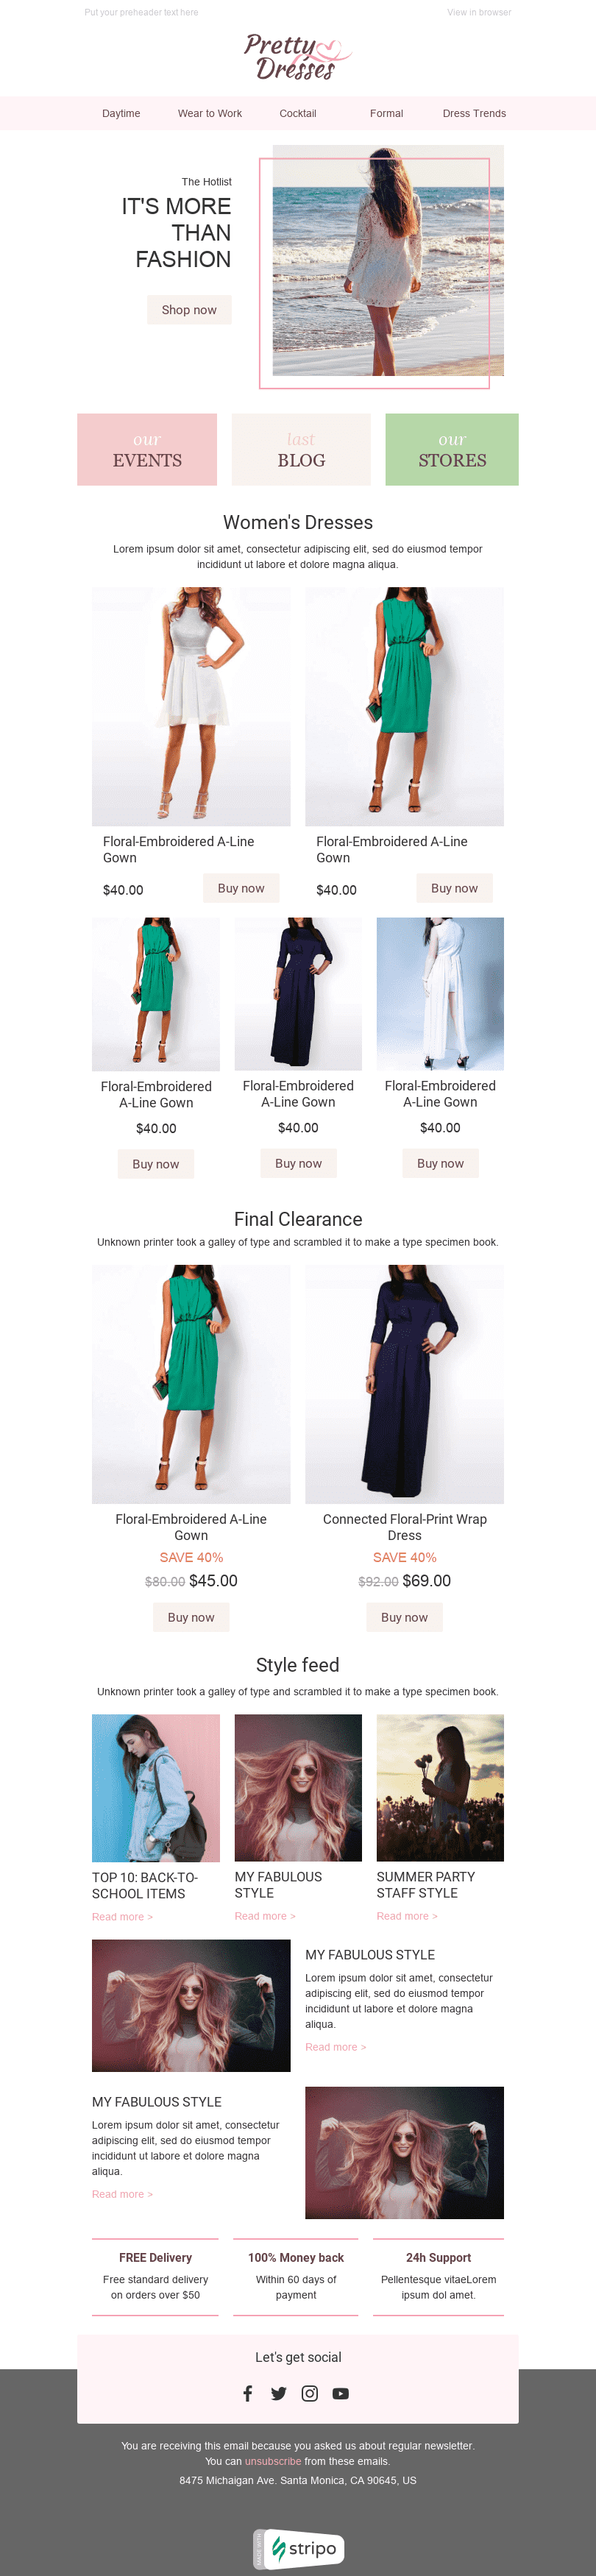 "Promo Email Template ""Pretty Dresses"" for Fashion industry desktop view"